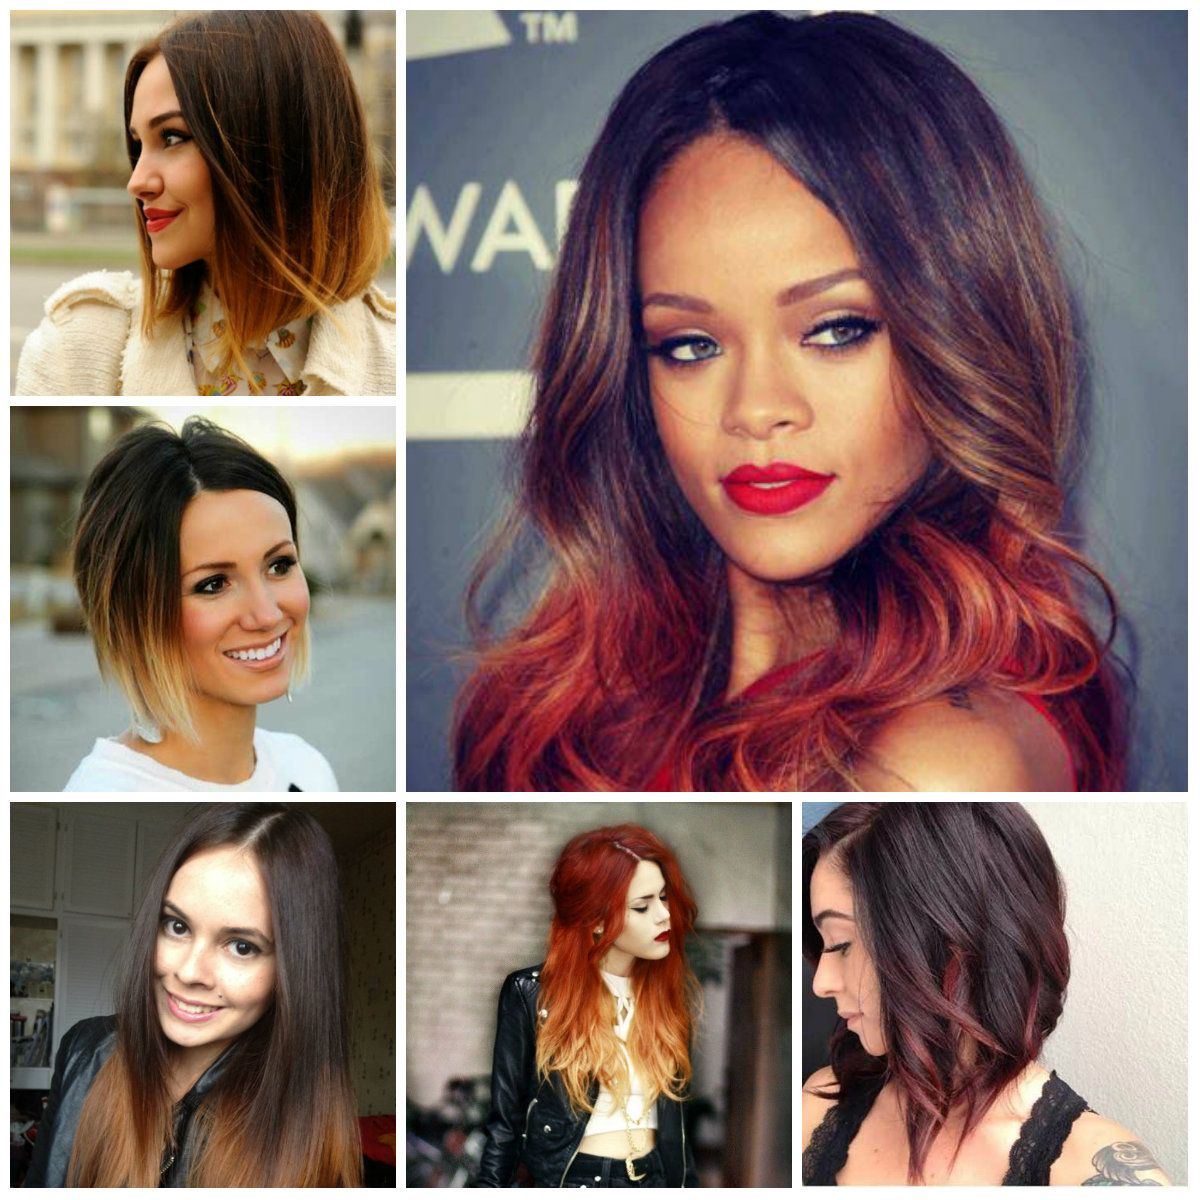 Hairstyles 2016 dark hair - Eunice Hair Sexy Ombre Color Virgin Remy Weft Human Brazilian Hair Extensions On Different Hairstyles